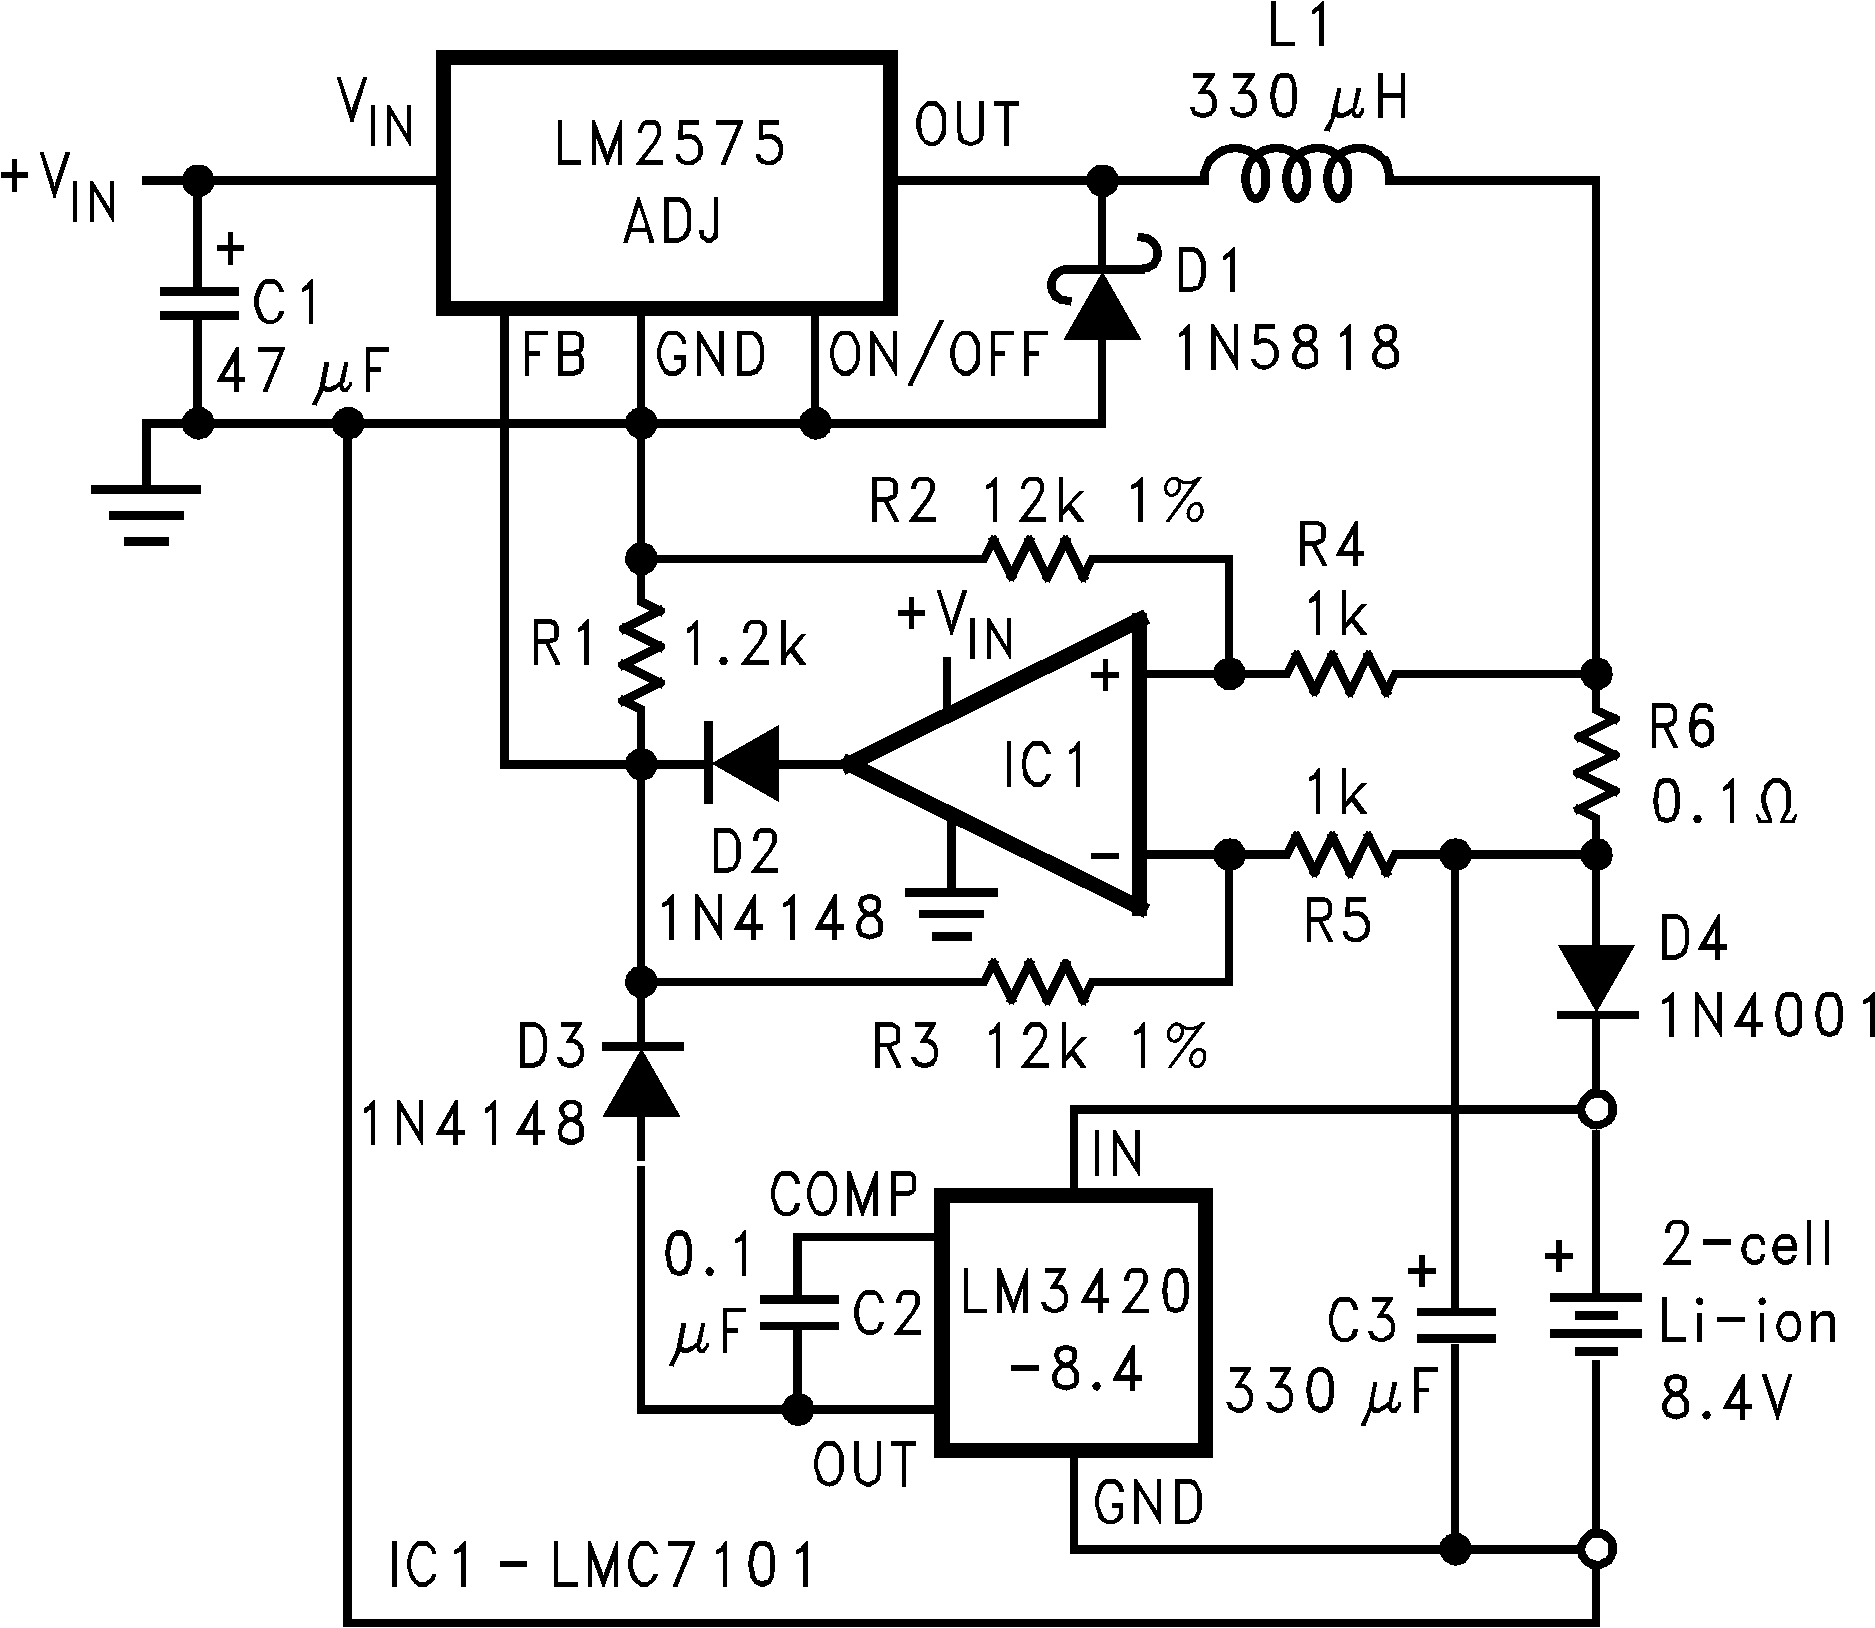 Lm3420 Above Charging Circuit Probably Follows More Or Less The High Efficiency Switching Charger With Side Current Sensing